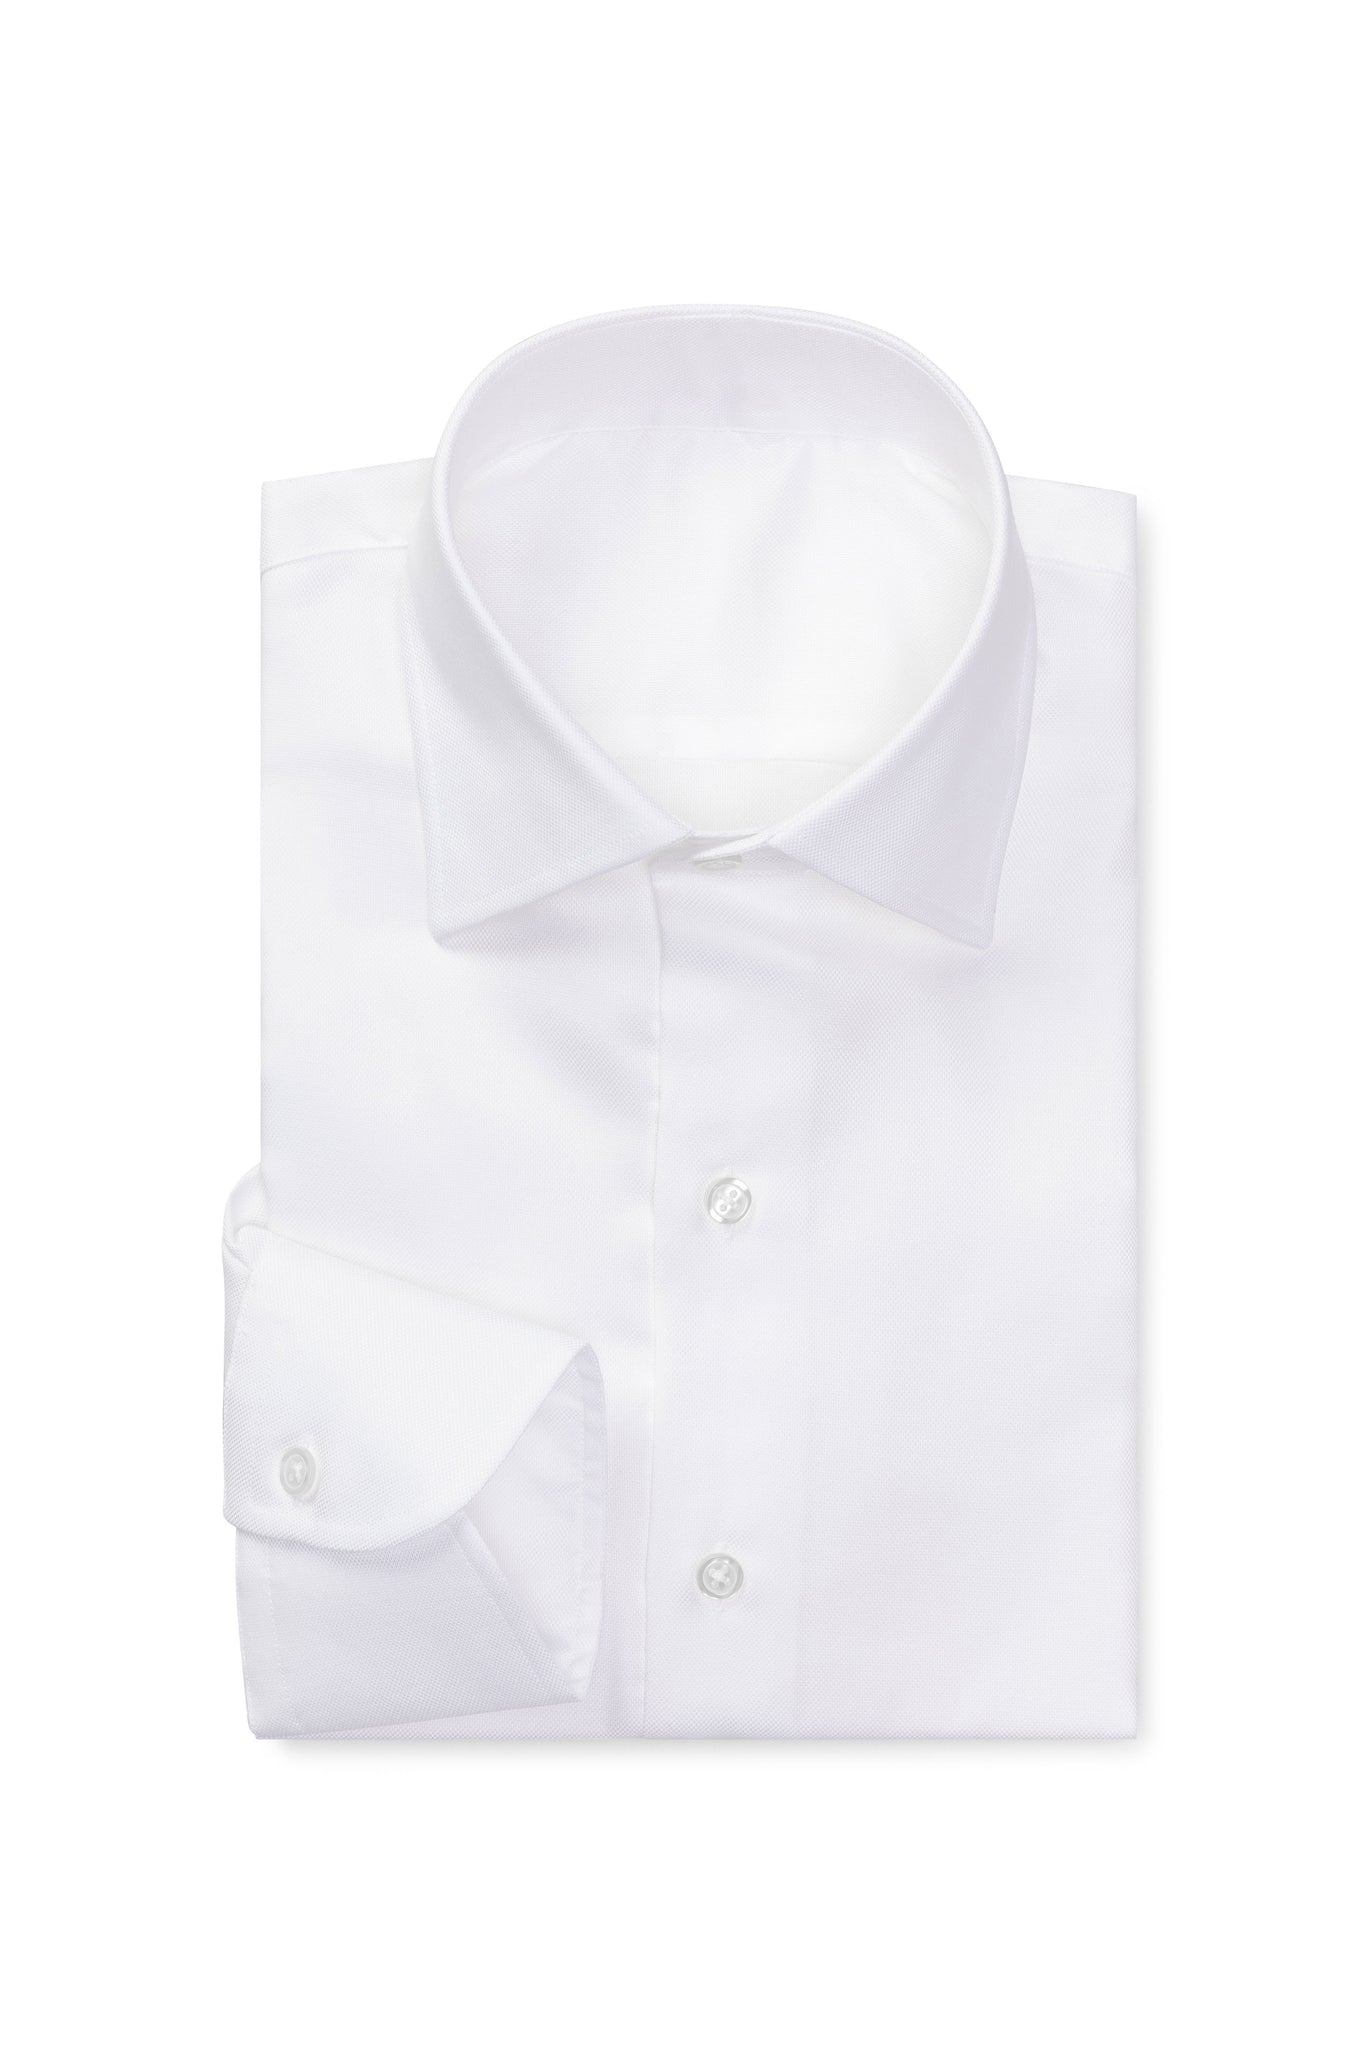 White Royal Oxford Made to Order Shirt